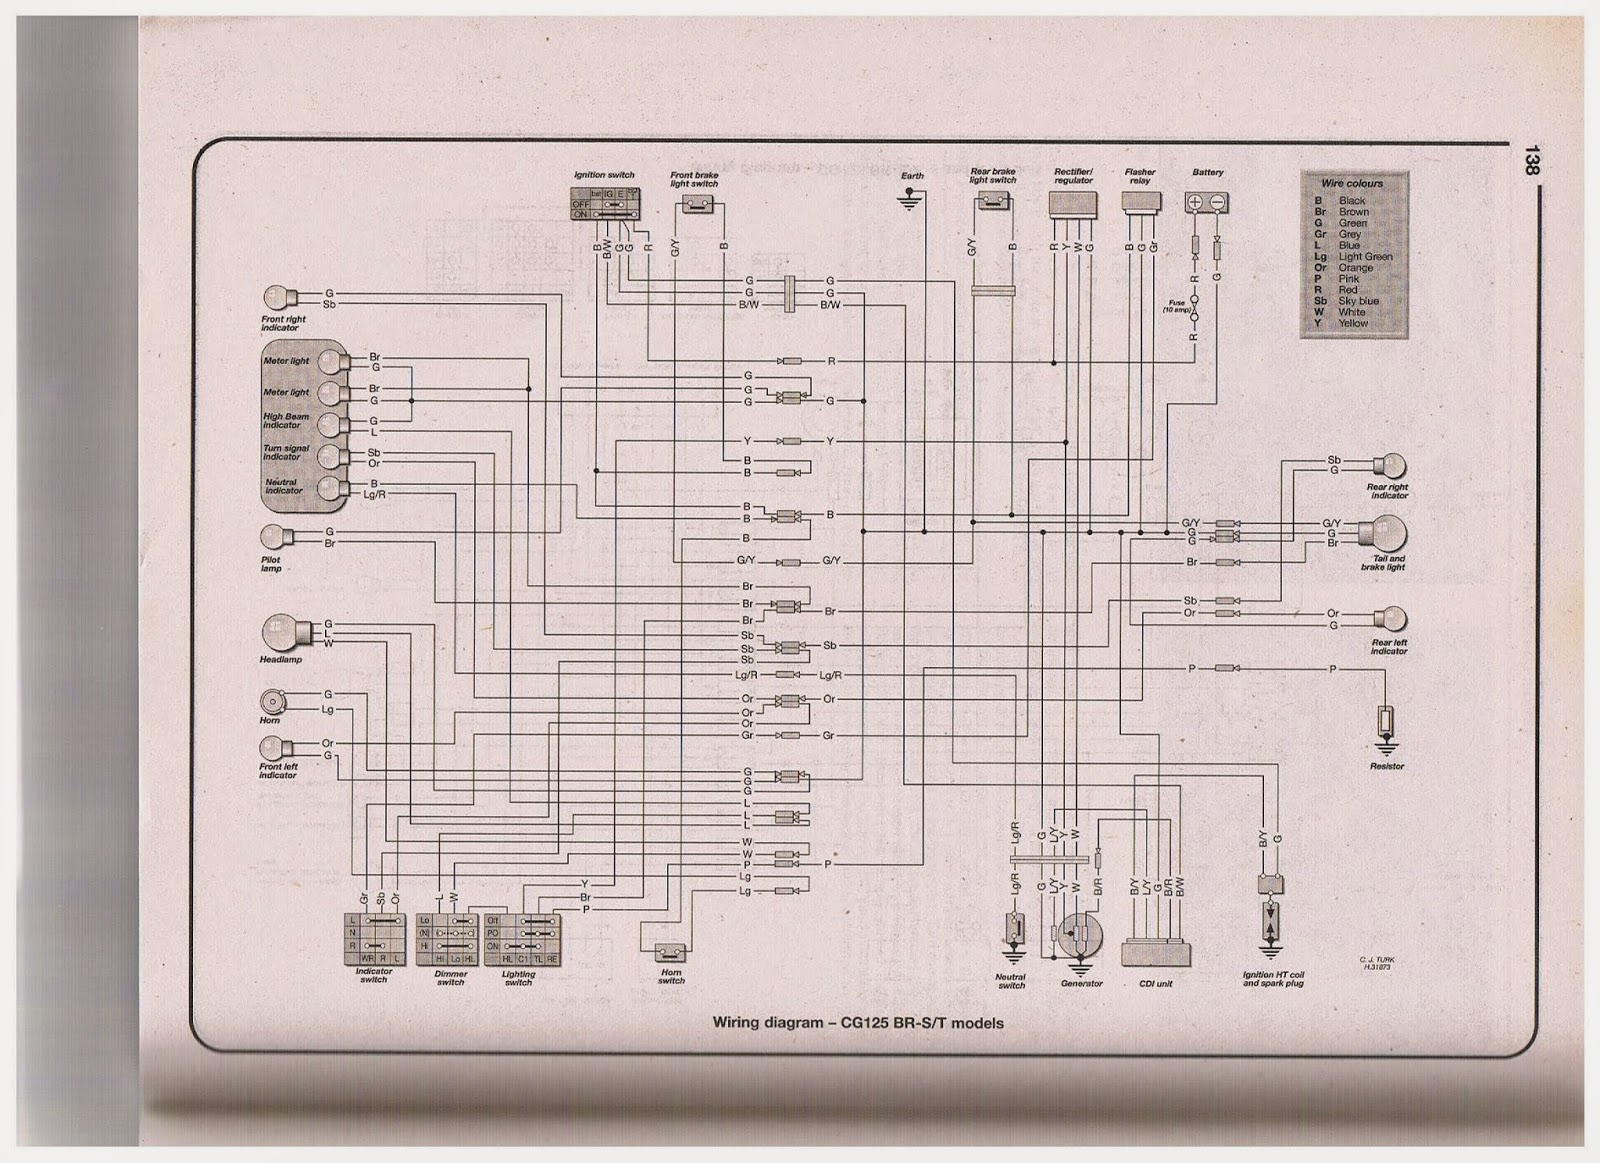 1974 Honda Ct70 Wiring Diagram Library Clymer Electrical Cg 125